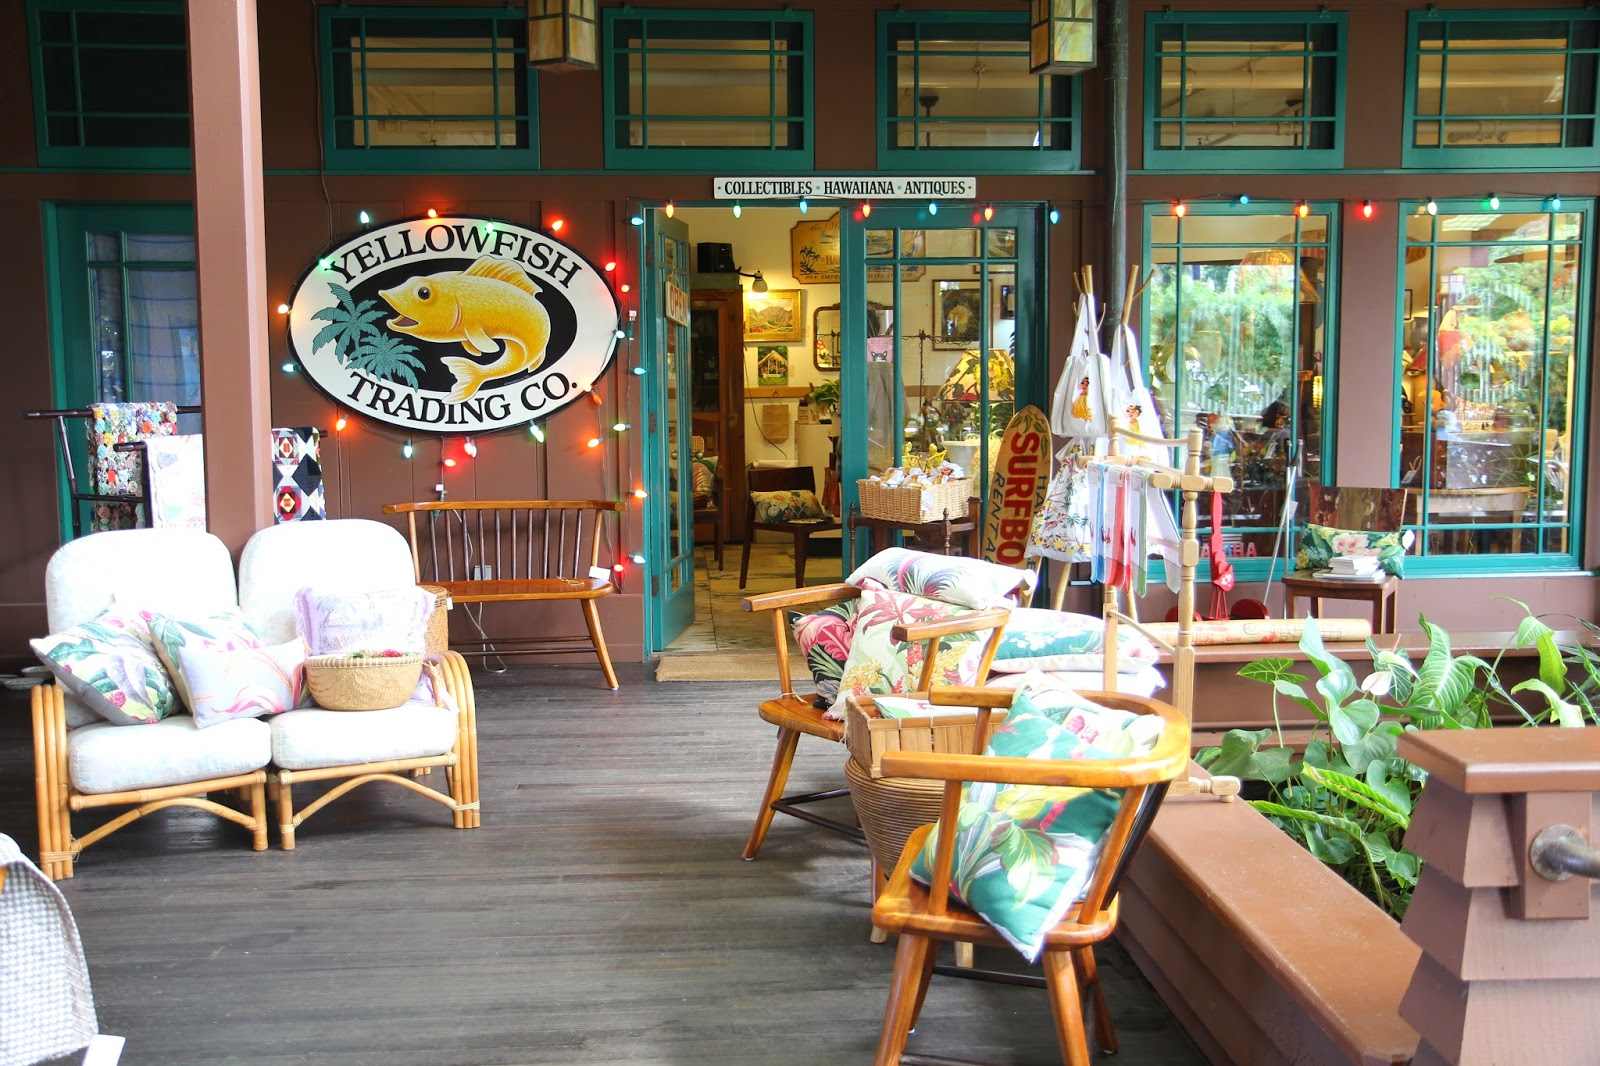 Yellowfish-Trading-Co-in-Hanalei